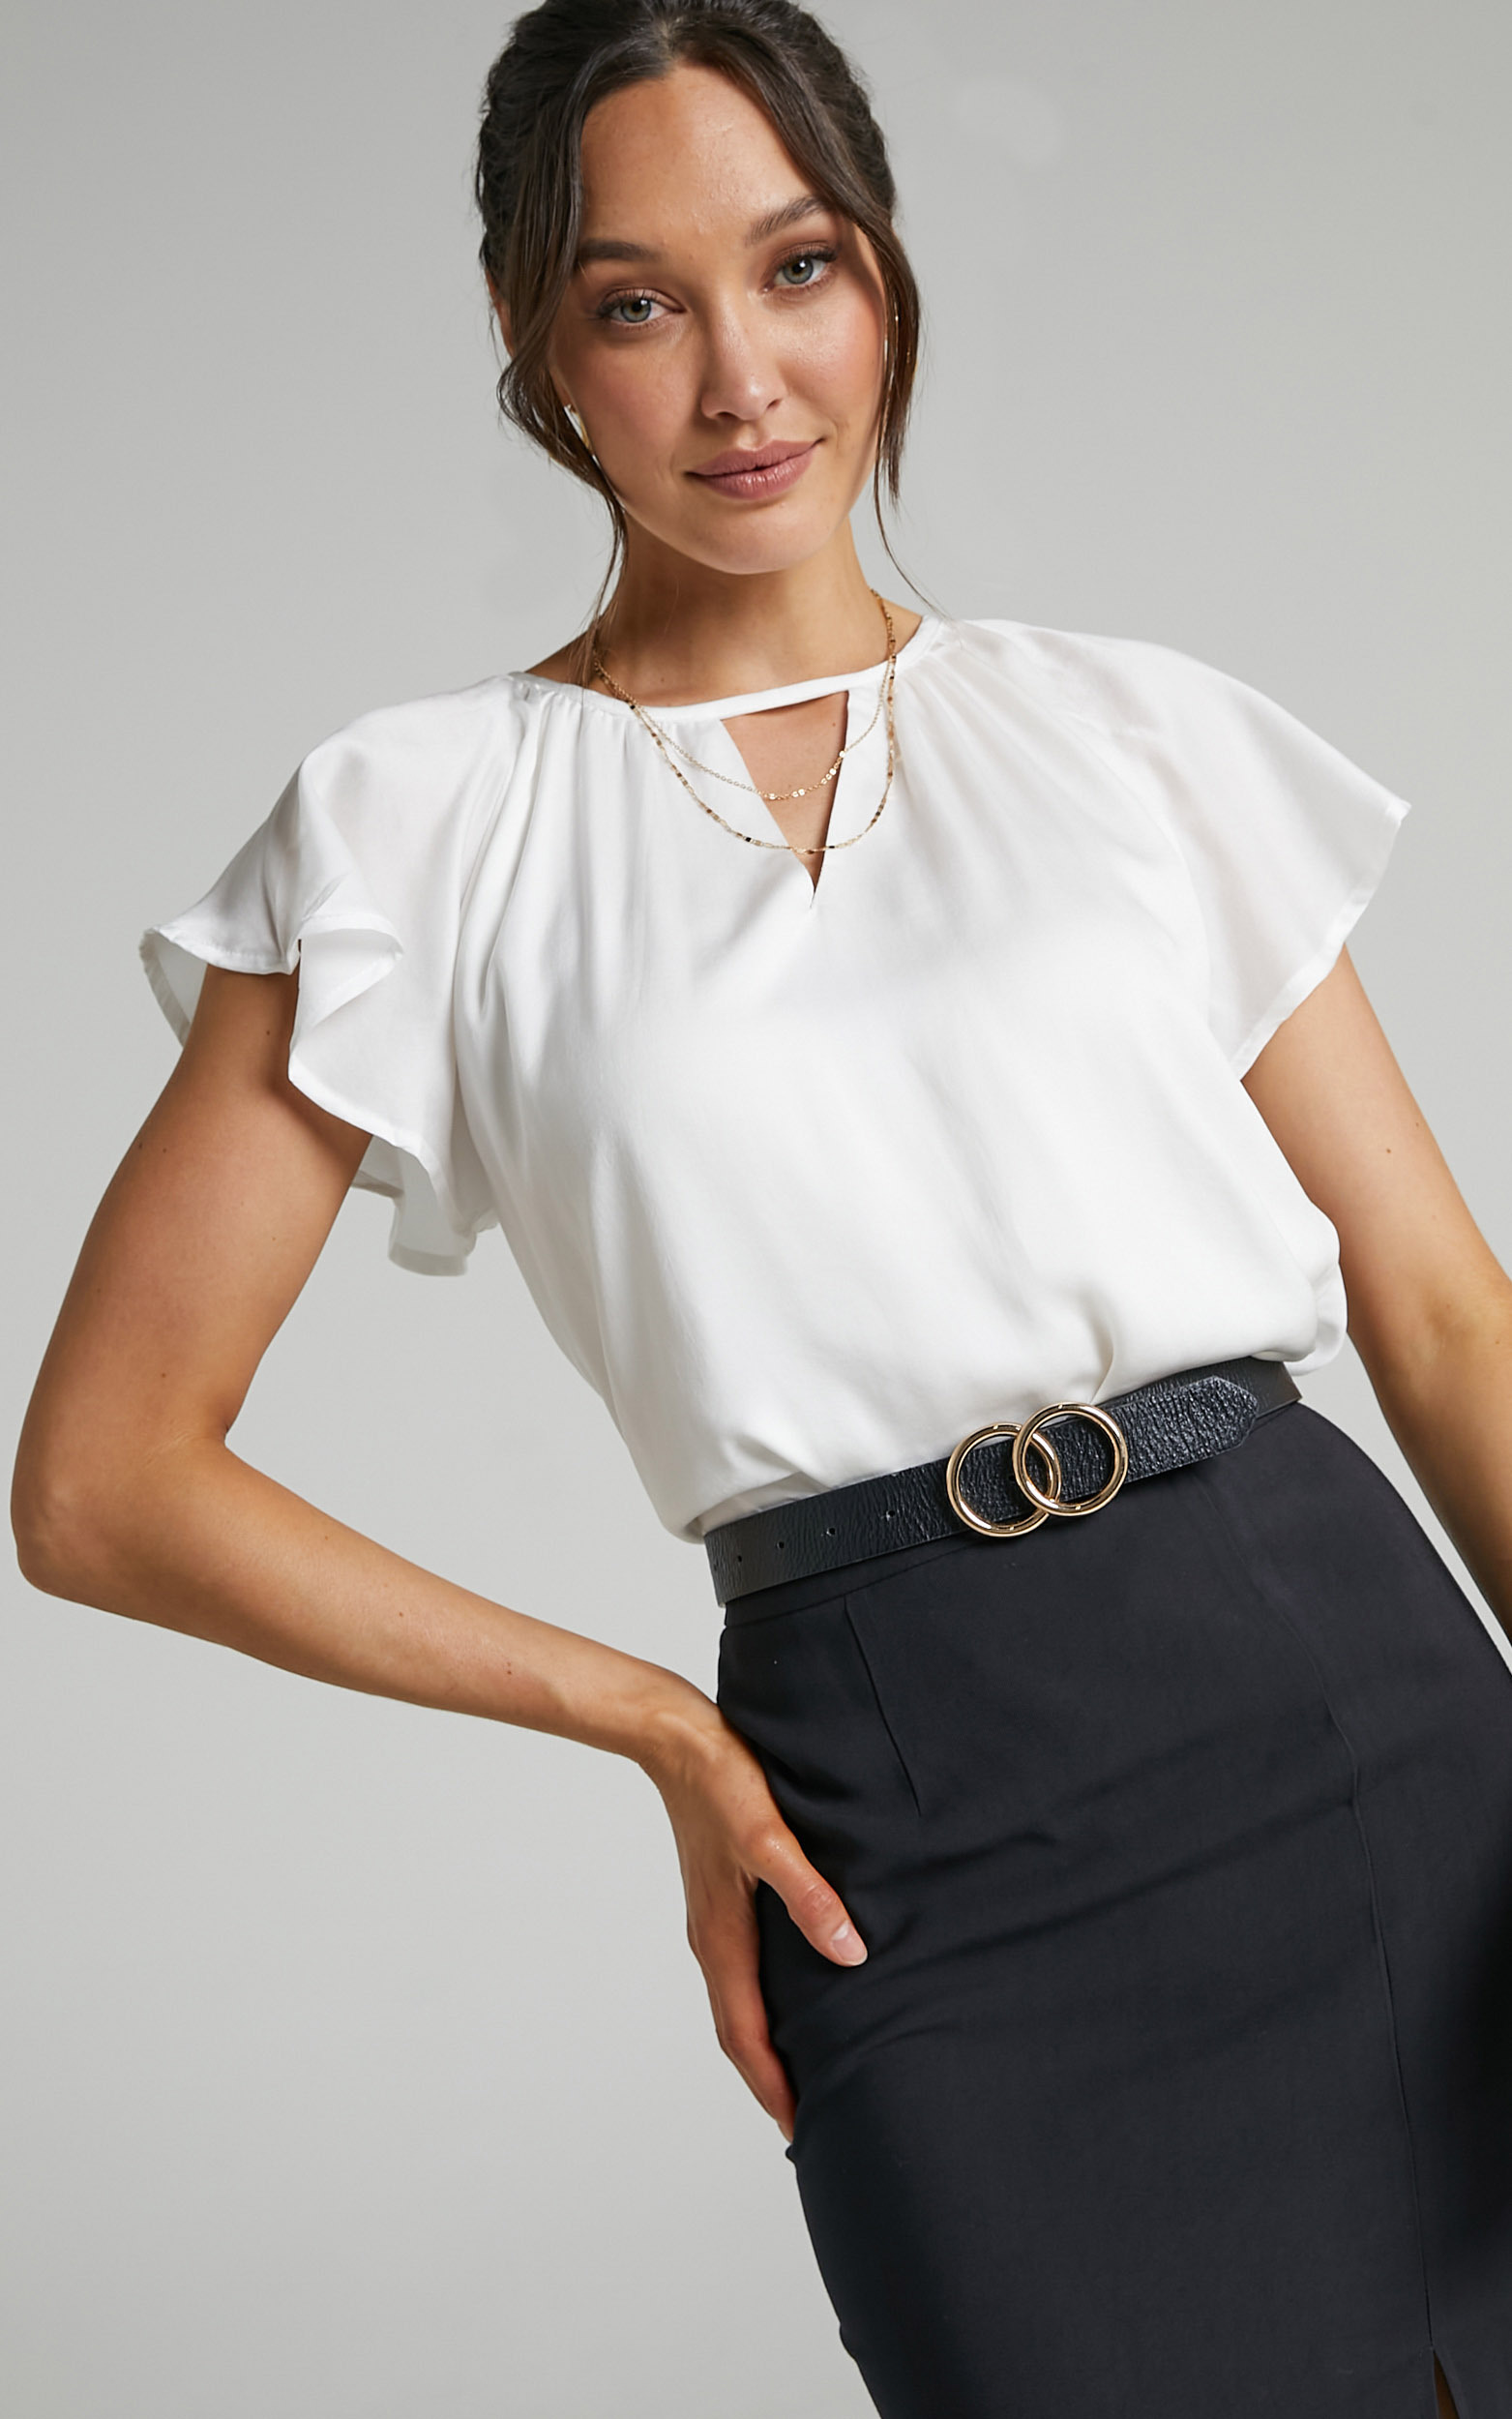 Demmi Key Hole Flutter Sleeve Top in White - 04, WHT3, hi-res image number null